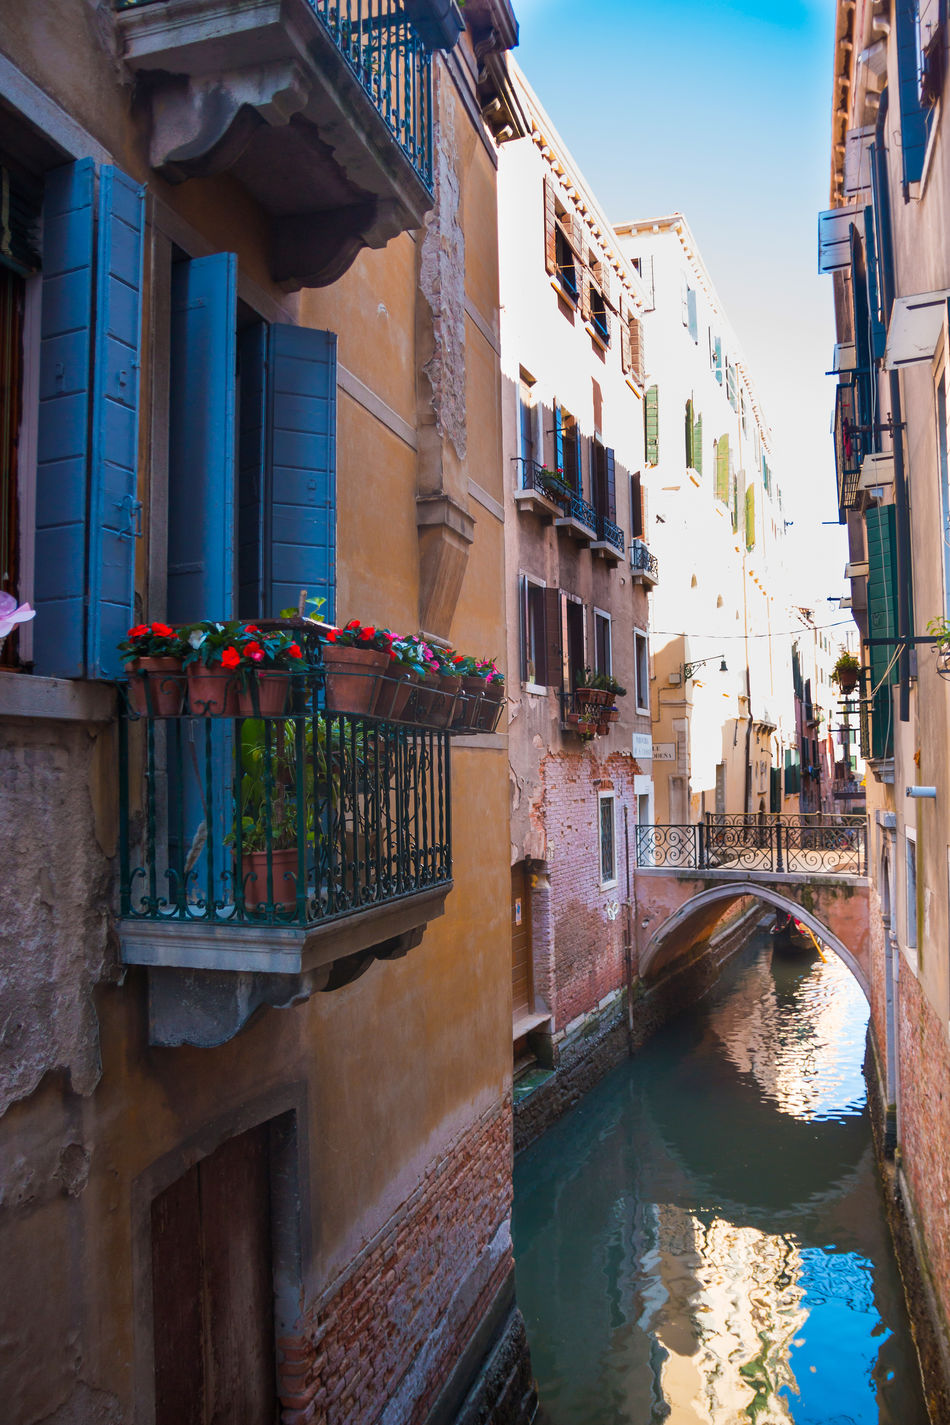 Architecture Balcony Building Exterior Built Structure City Day Italy No People Outdoors Sky Venice, Italy Water Window Box